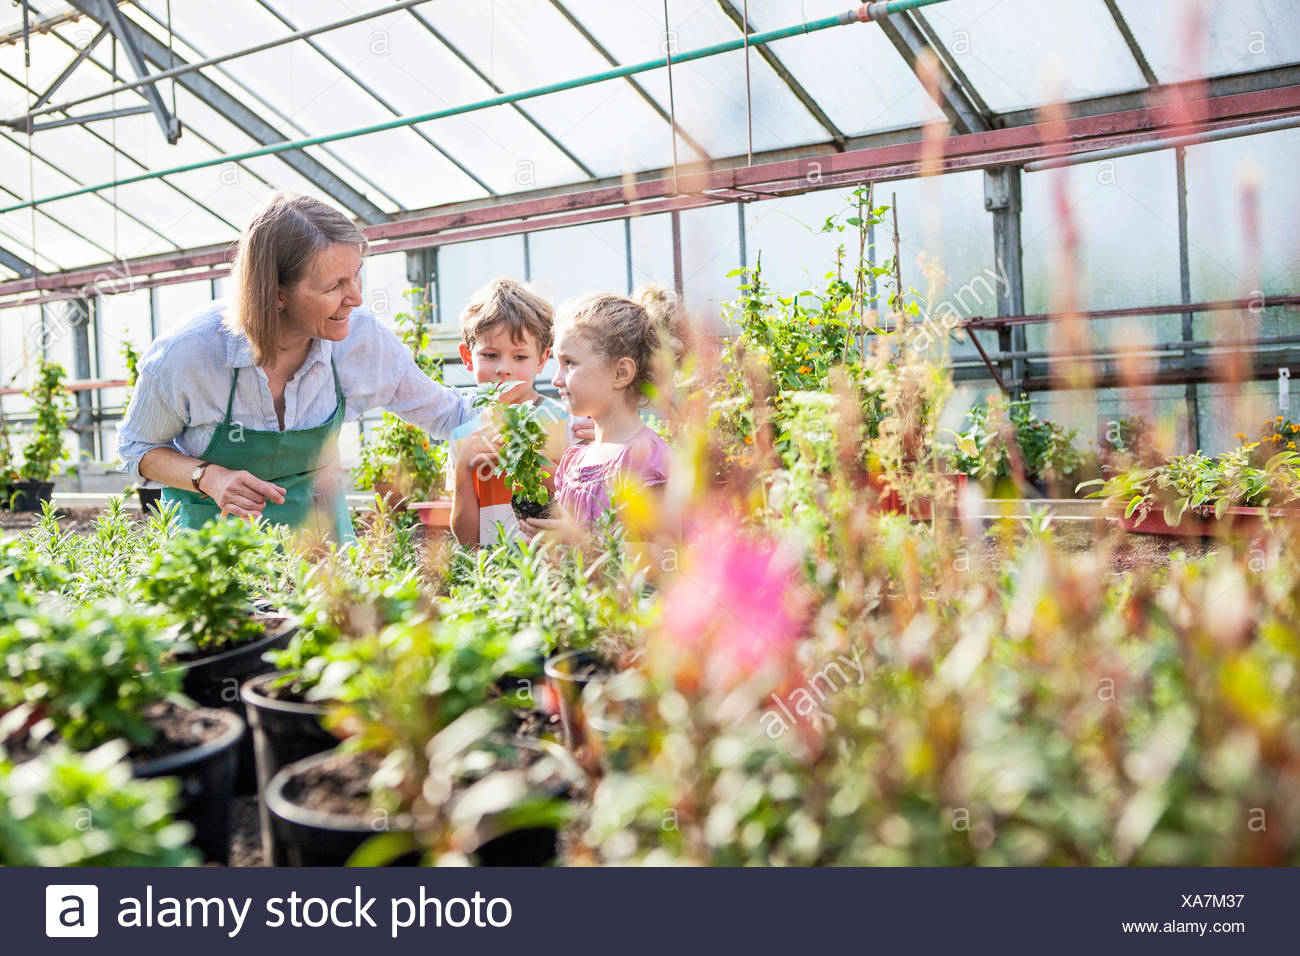 Female gardener and children in greenhouse Stock Photo